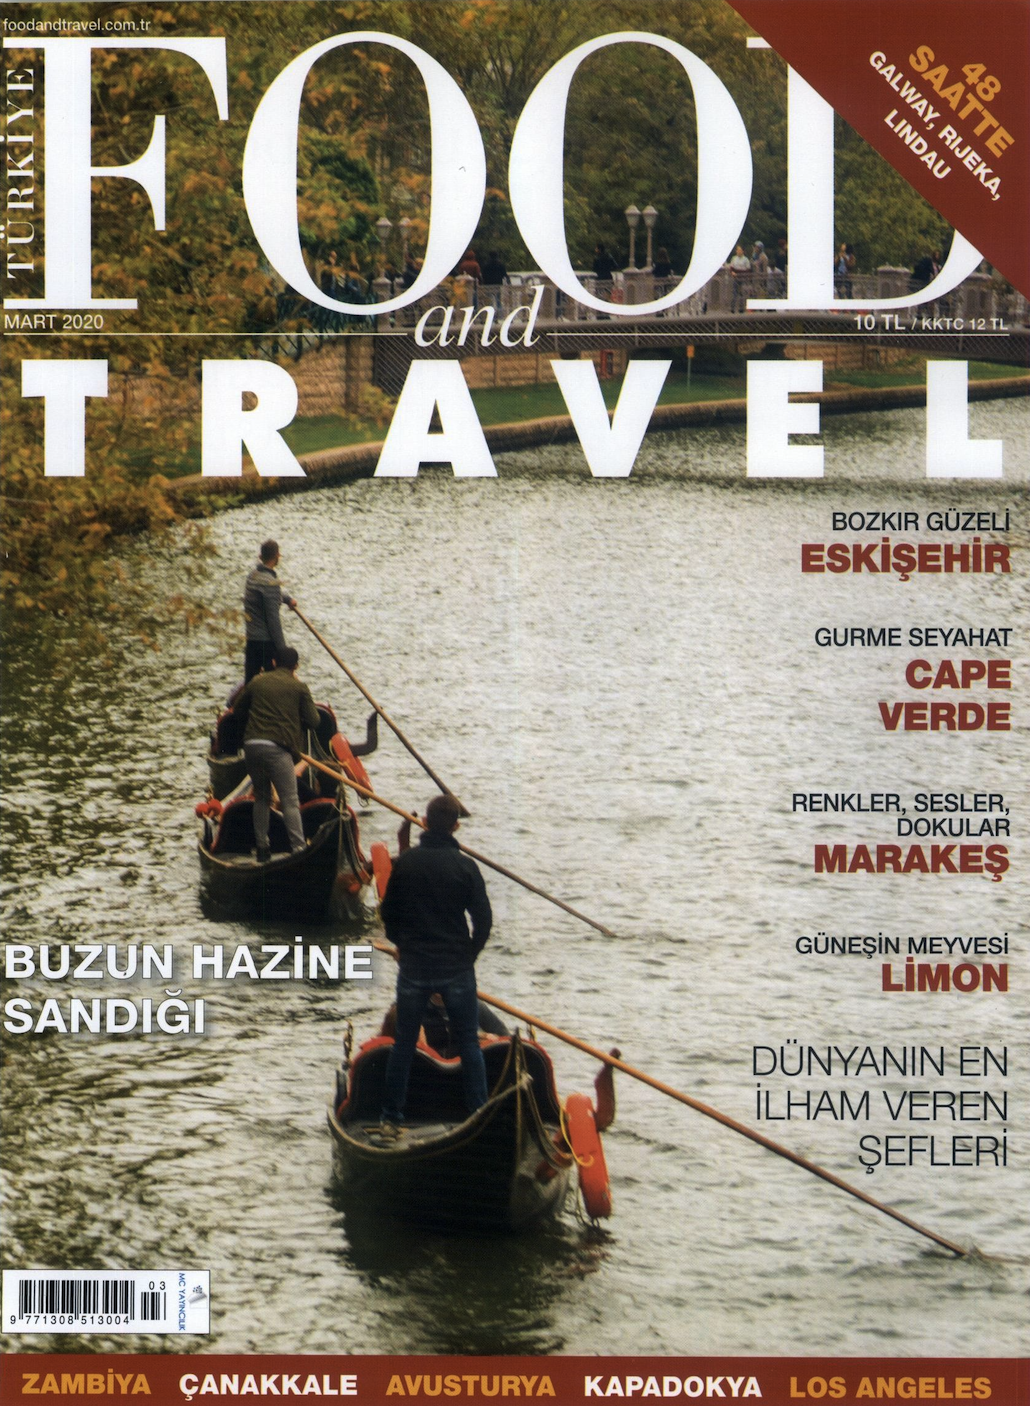 Food and Travel Turkey Cover March 2020